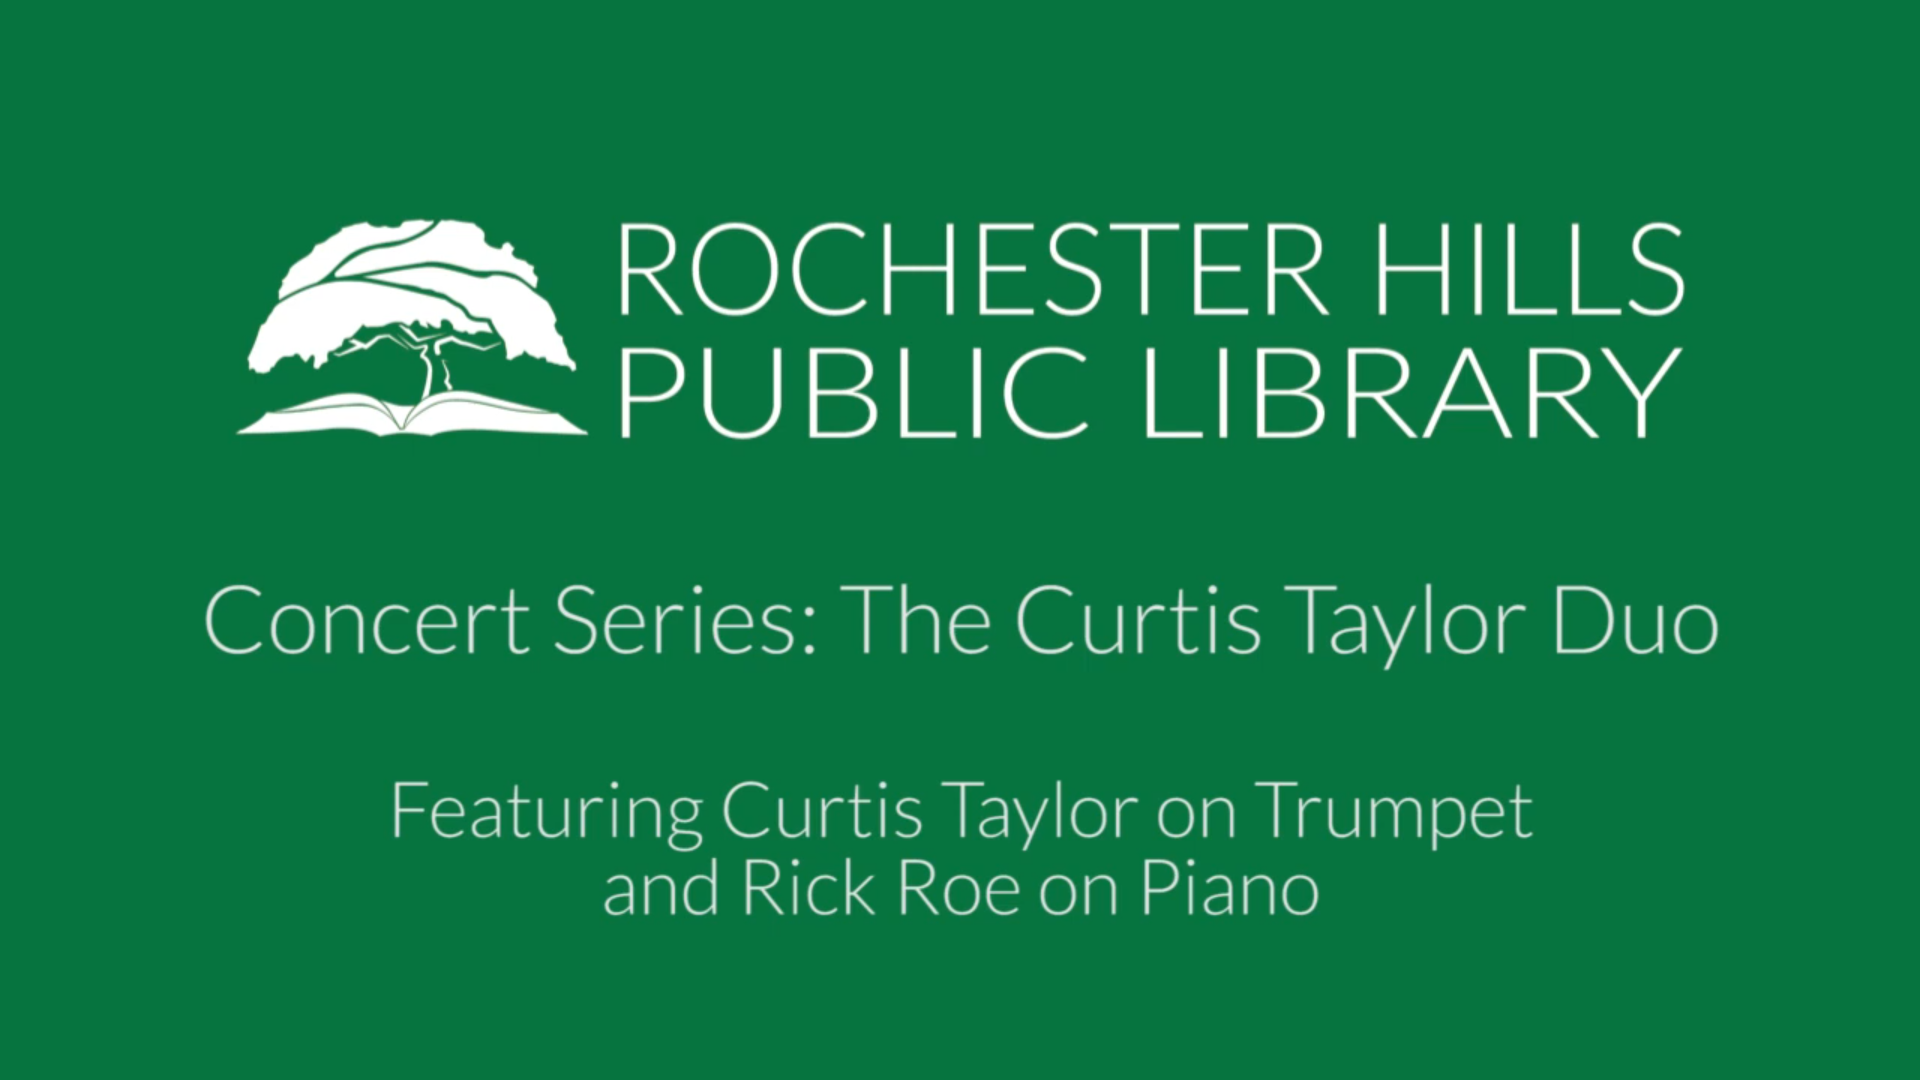 Concert Series: Curtis Taylor Duo